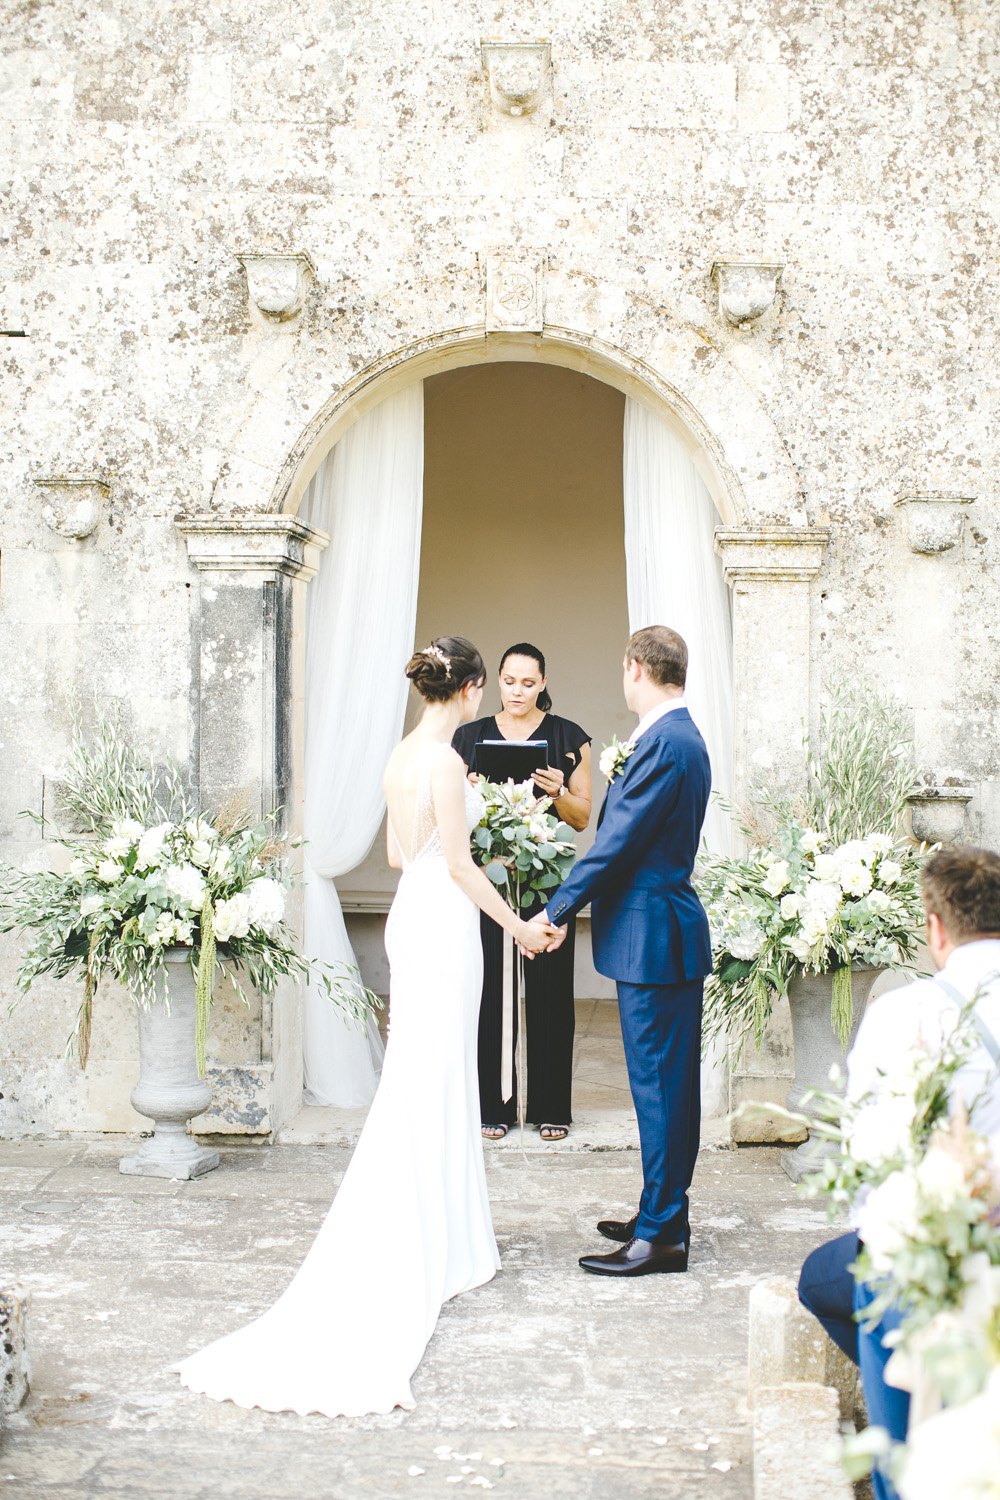 Les Amis Photo_Destination Wedding Photographer_Puglia Wedding_Masseria Torre Ruggeri_NICMATT_275.jpg